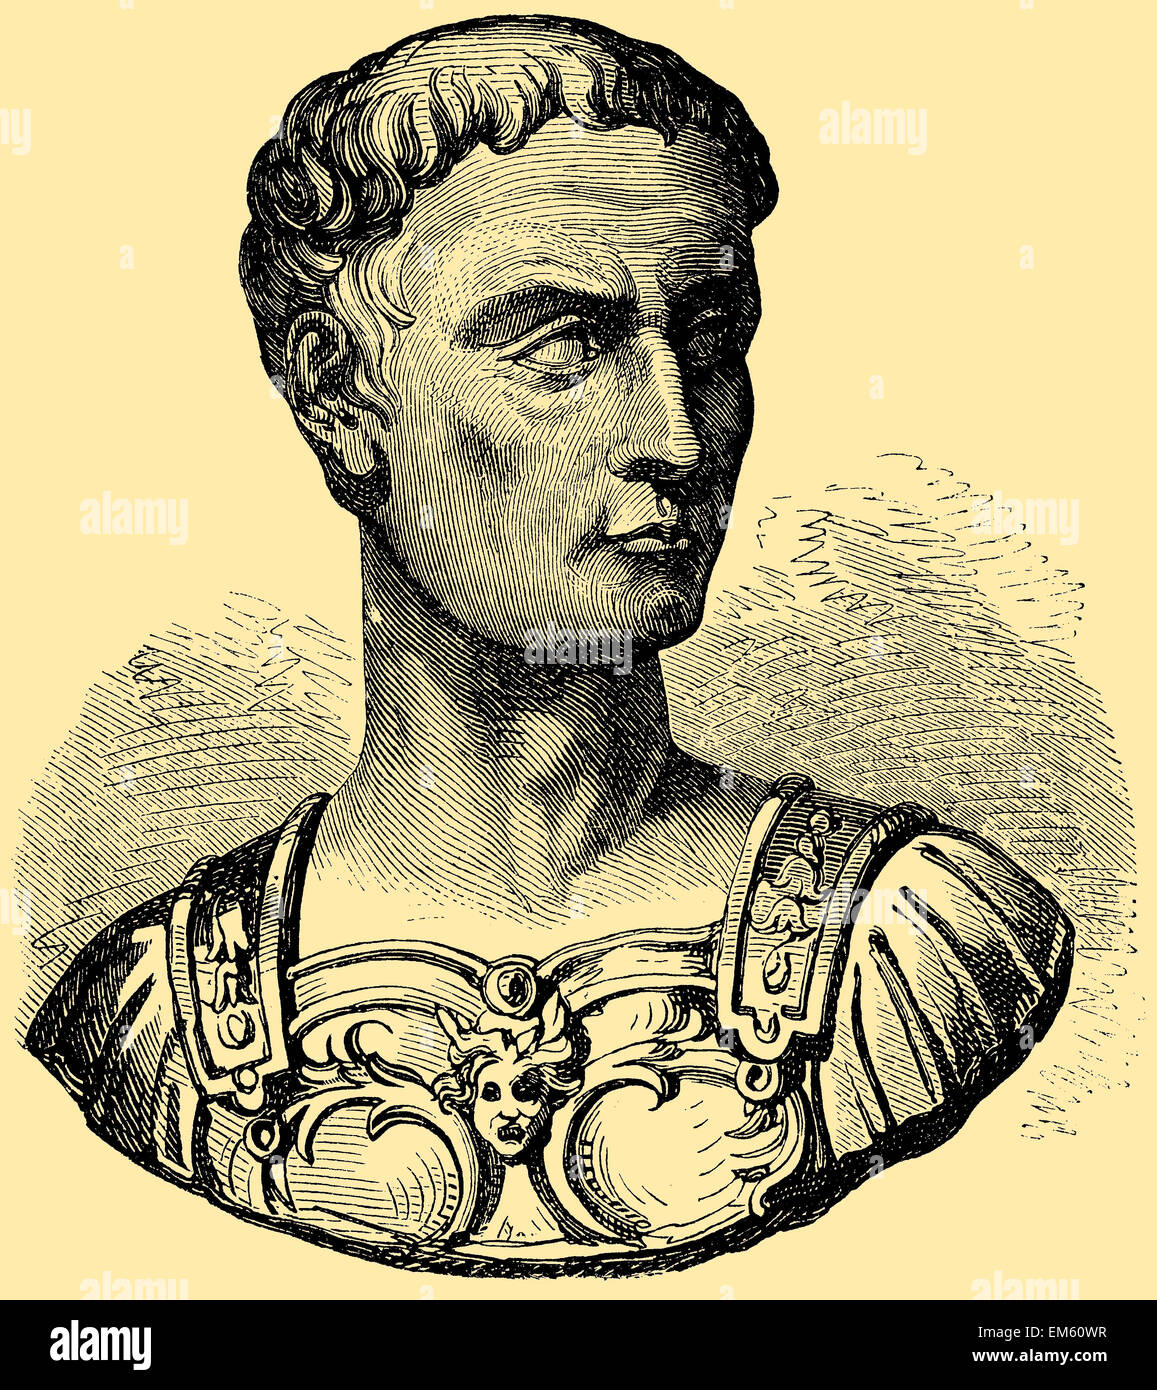 gaius julius caesar the populares and How do you remember this great roman i watch a movie about him every year on this date, take the day off and prepare a roman feast in the evening =.